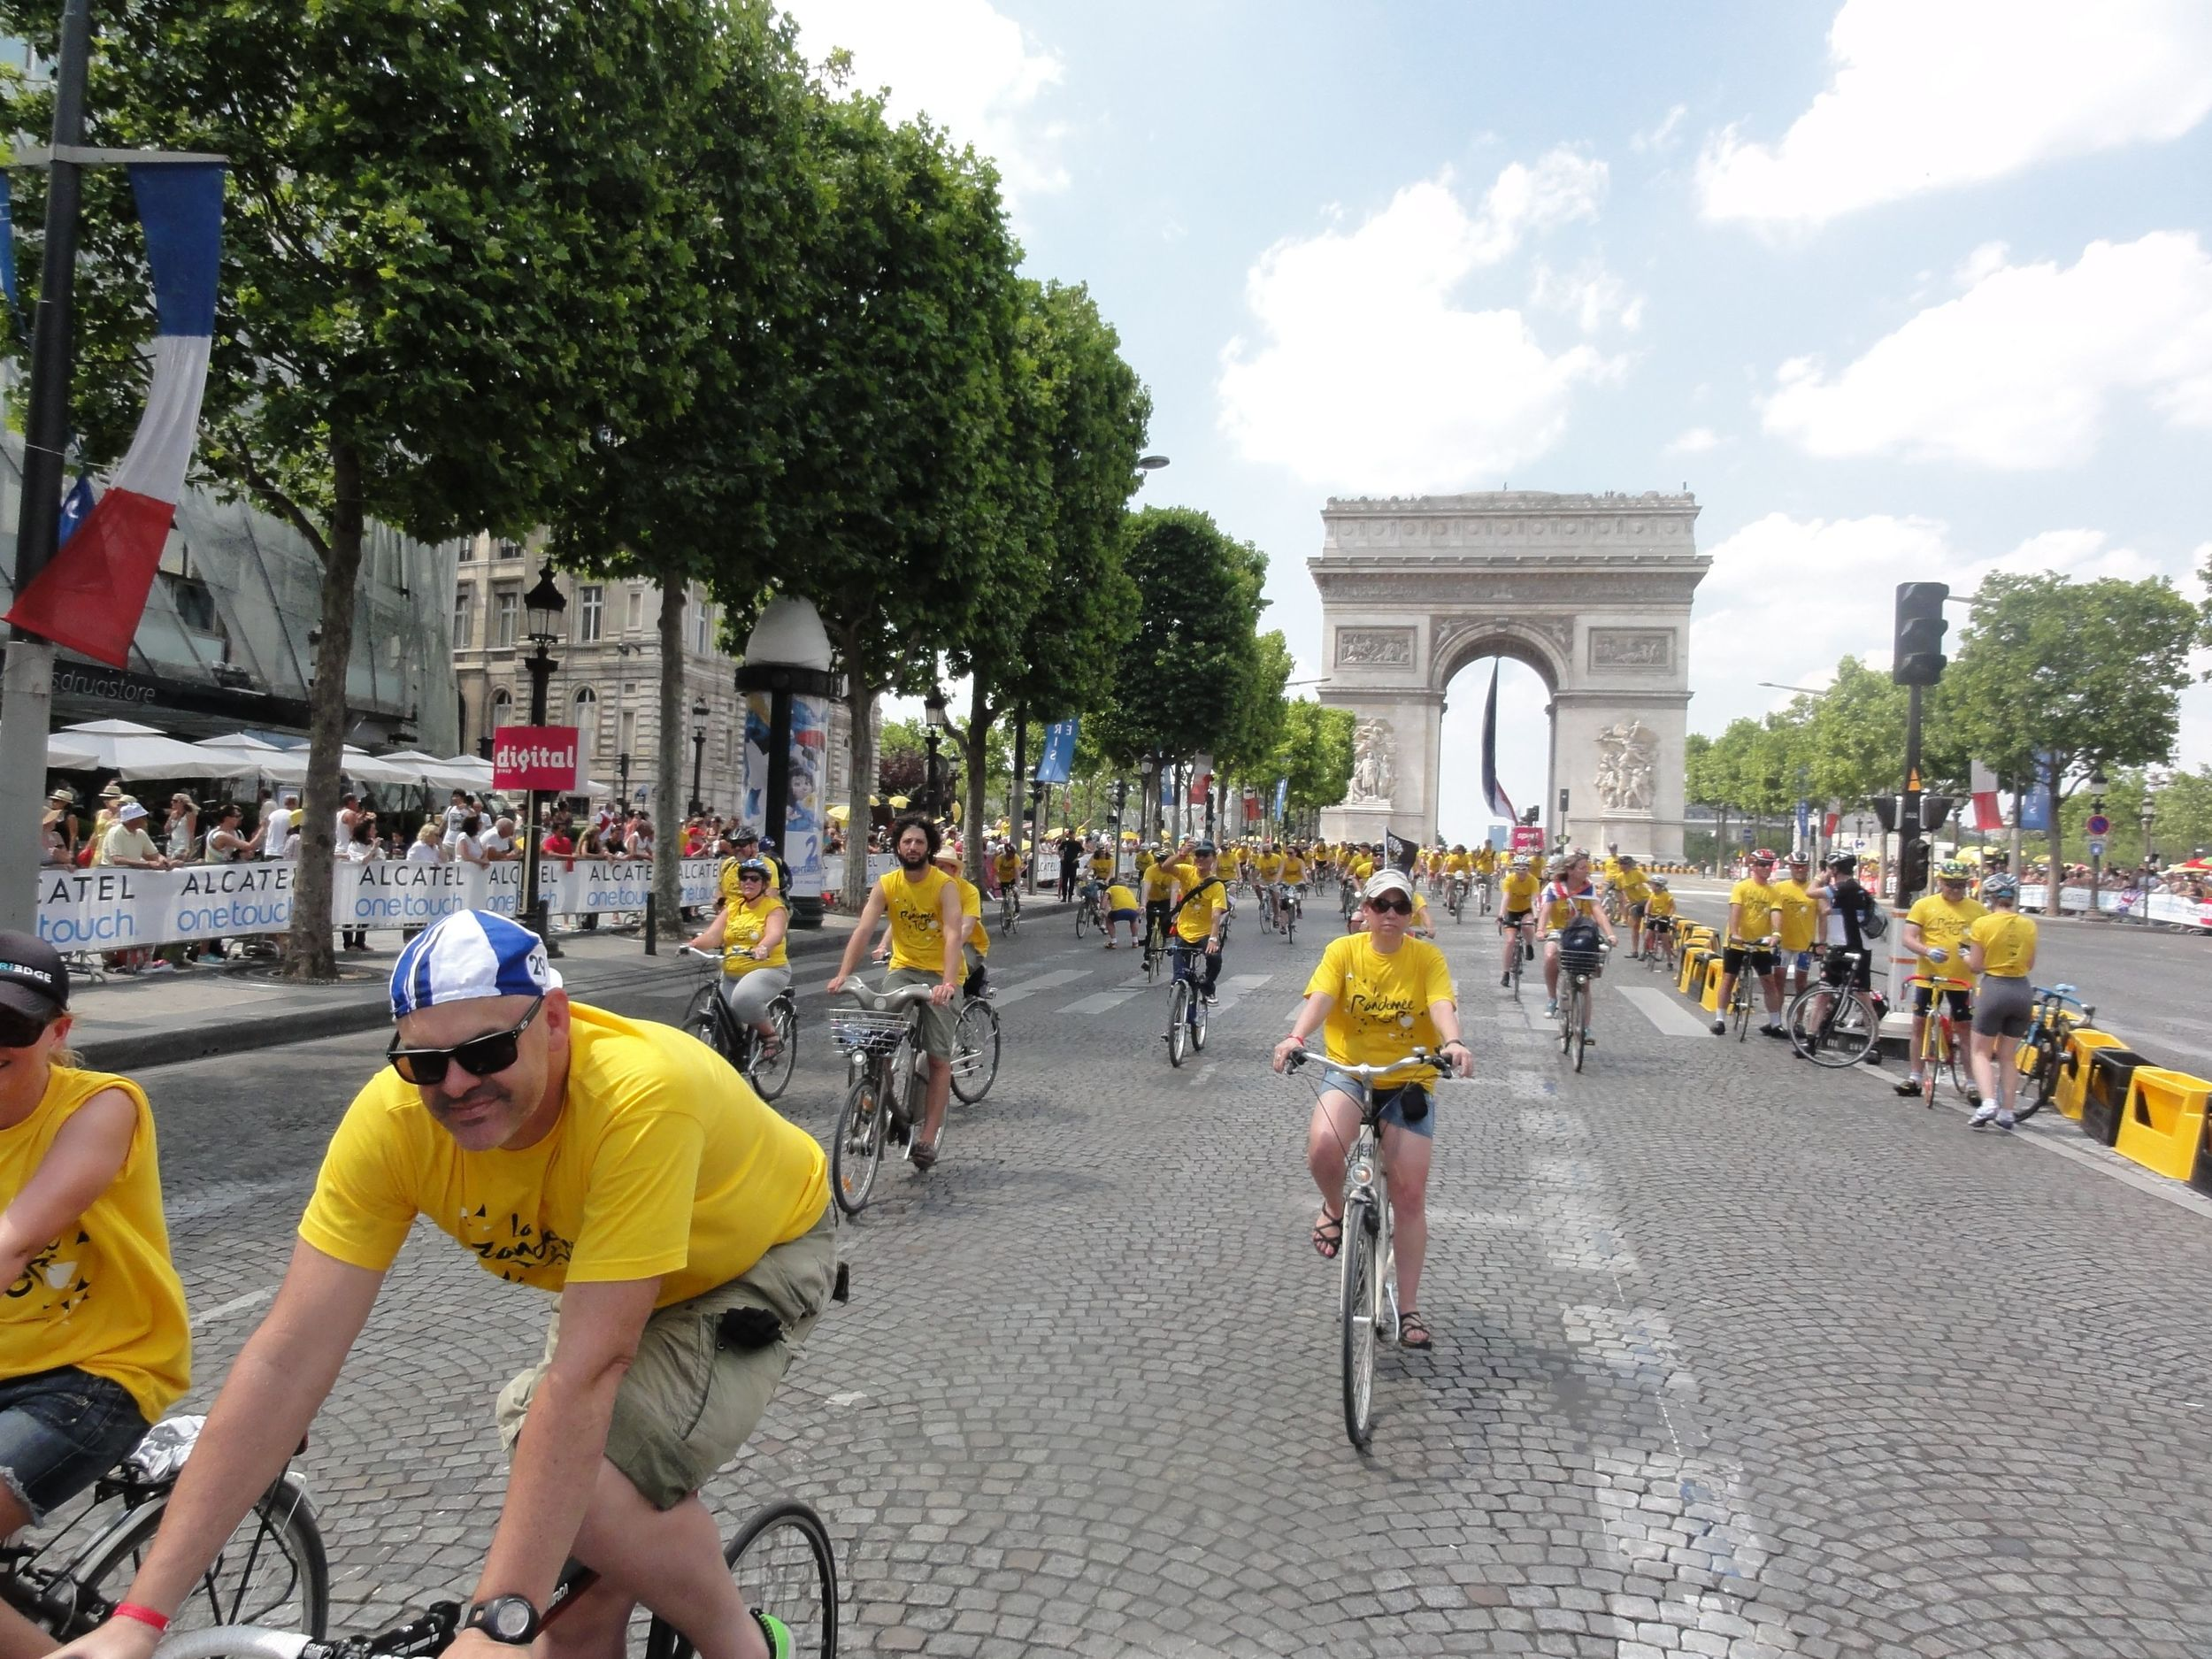 Coming down the Champs-Elysees was a special moment. The crowd was already 6 deep in places and like the MCG on boxing day- to stand on the hallowed ground was fairly awesome! (plus look at the hipster to the left- french cool at it's best!)